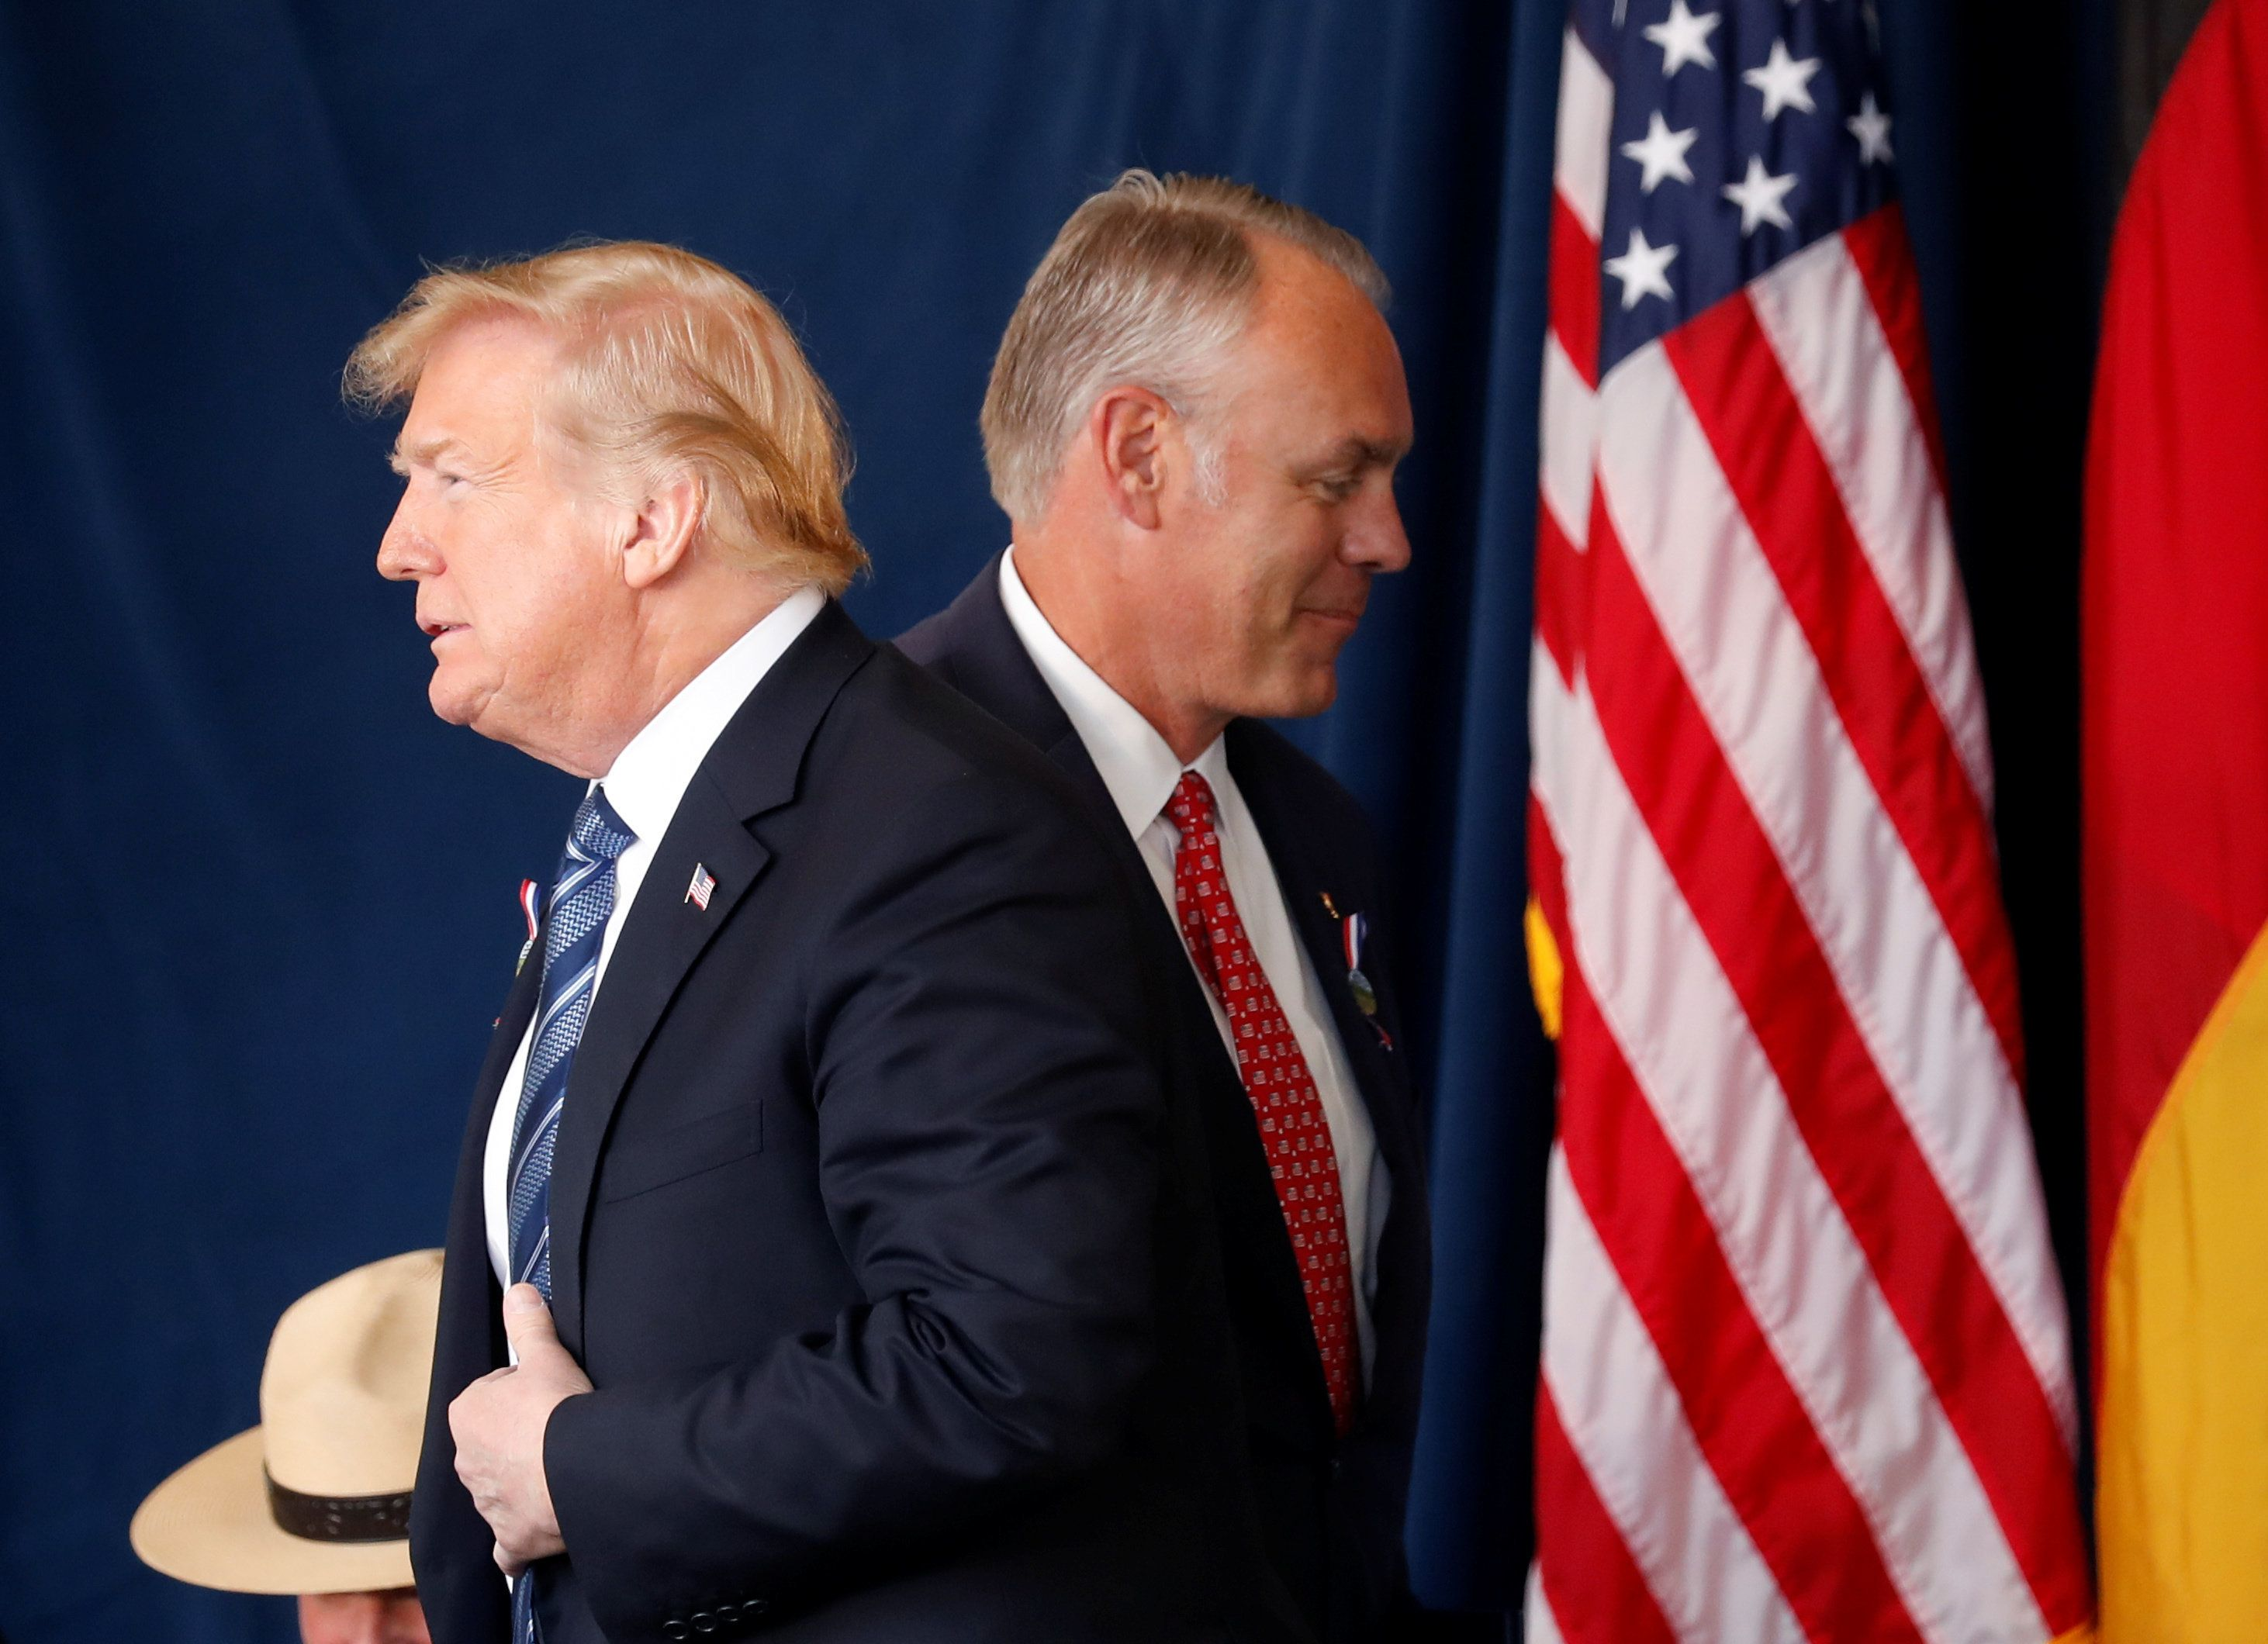 Interior Secretary Ryan Zinke may be at odds with President Trump's own ethics pledge.